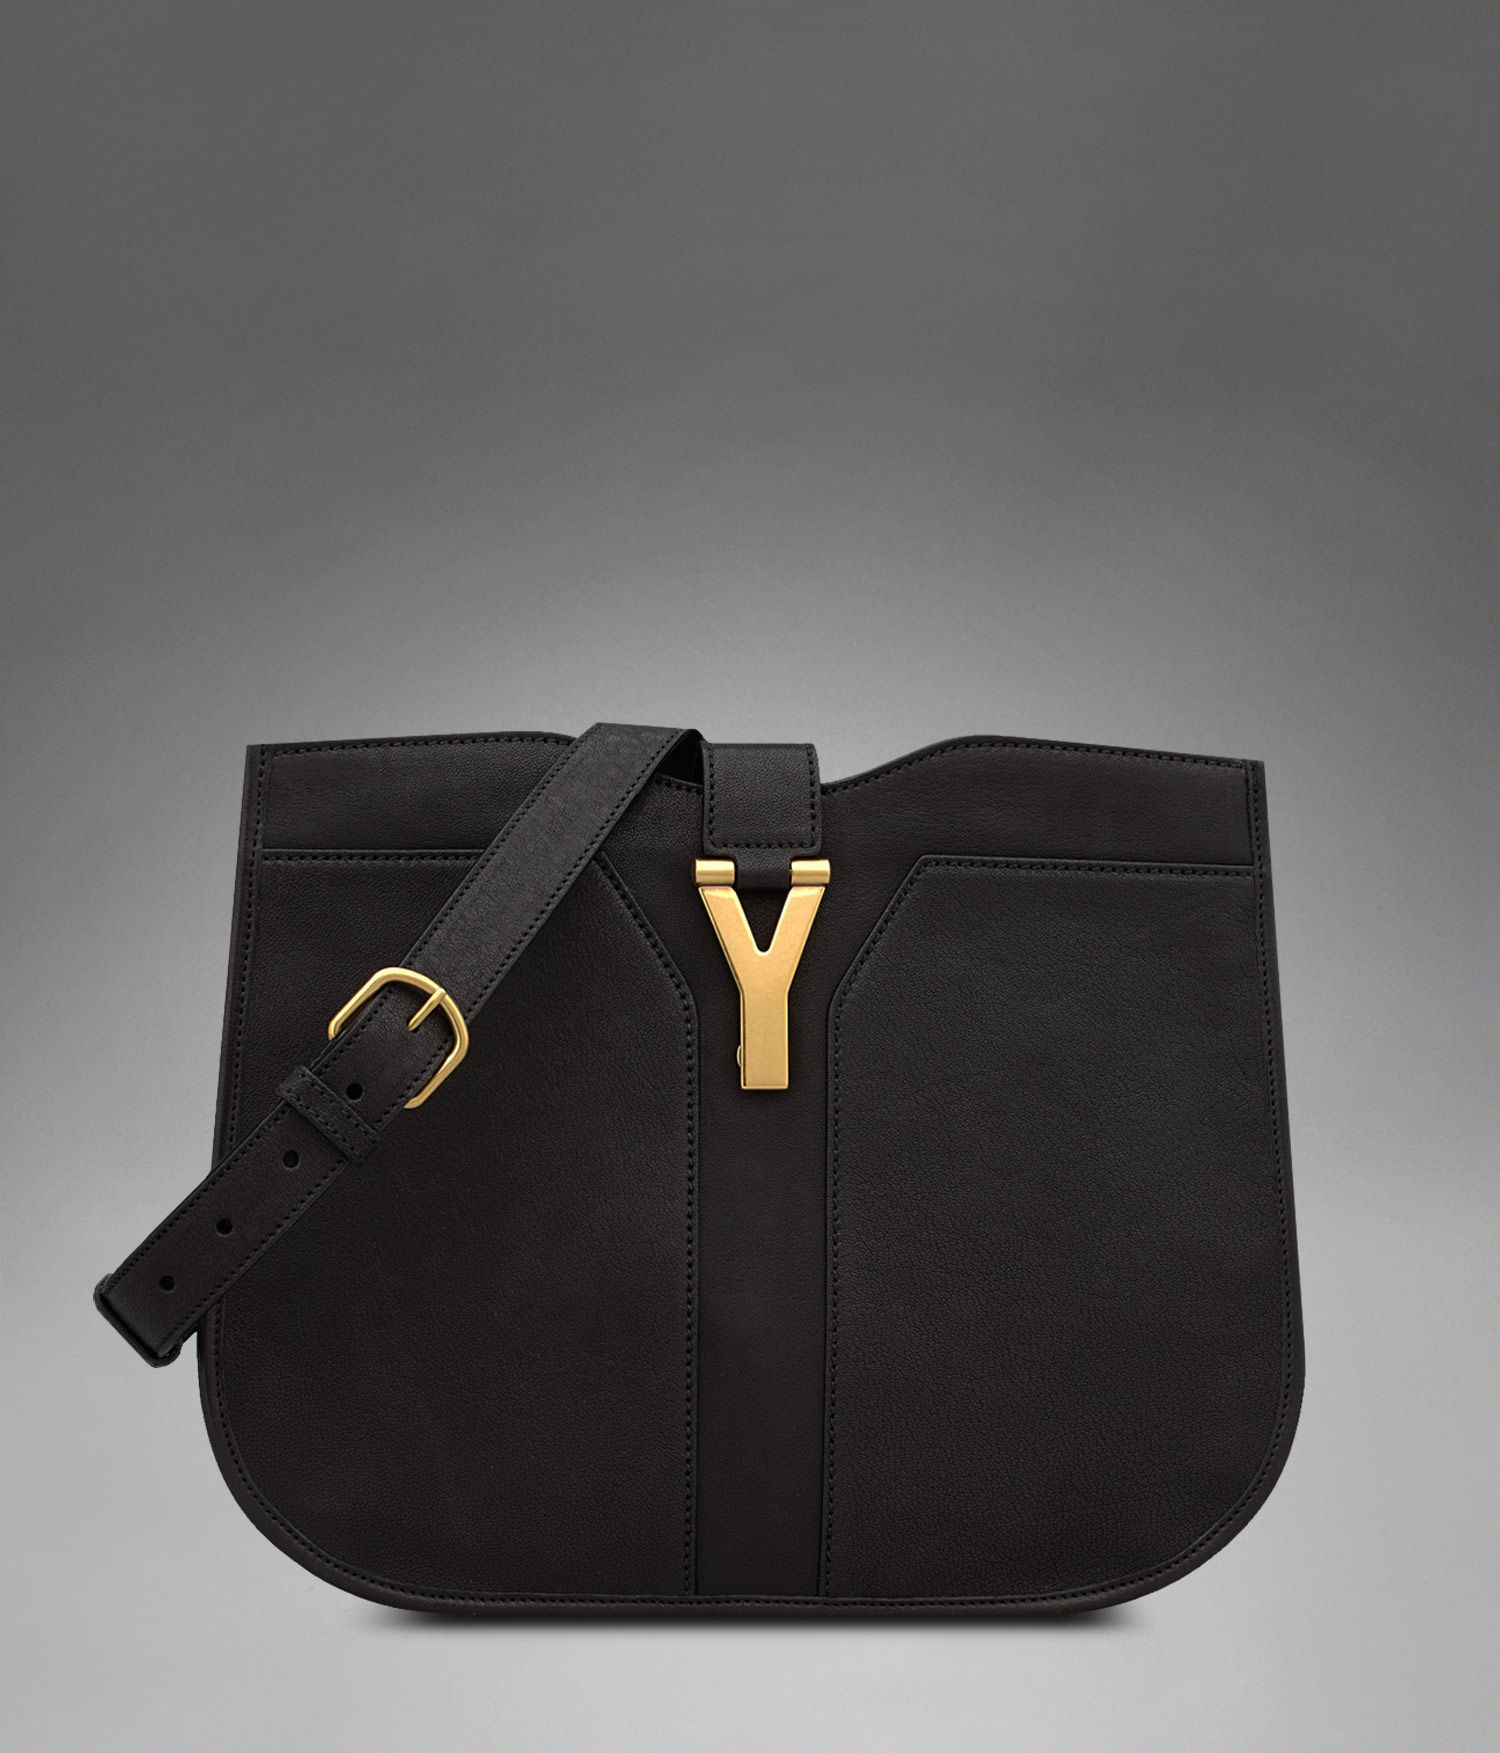 Medium YSL Chyc Shoulder Bag in Black Leather - Chyc – Handbags – Women – Yves  Saint Laurent – www.ysl.com ad42dfced45b1